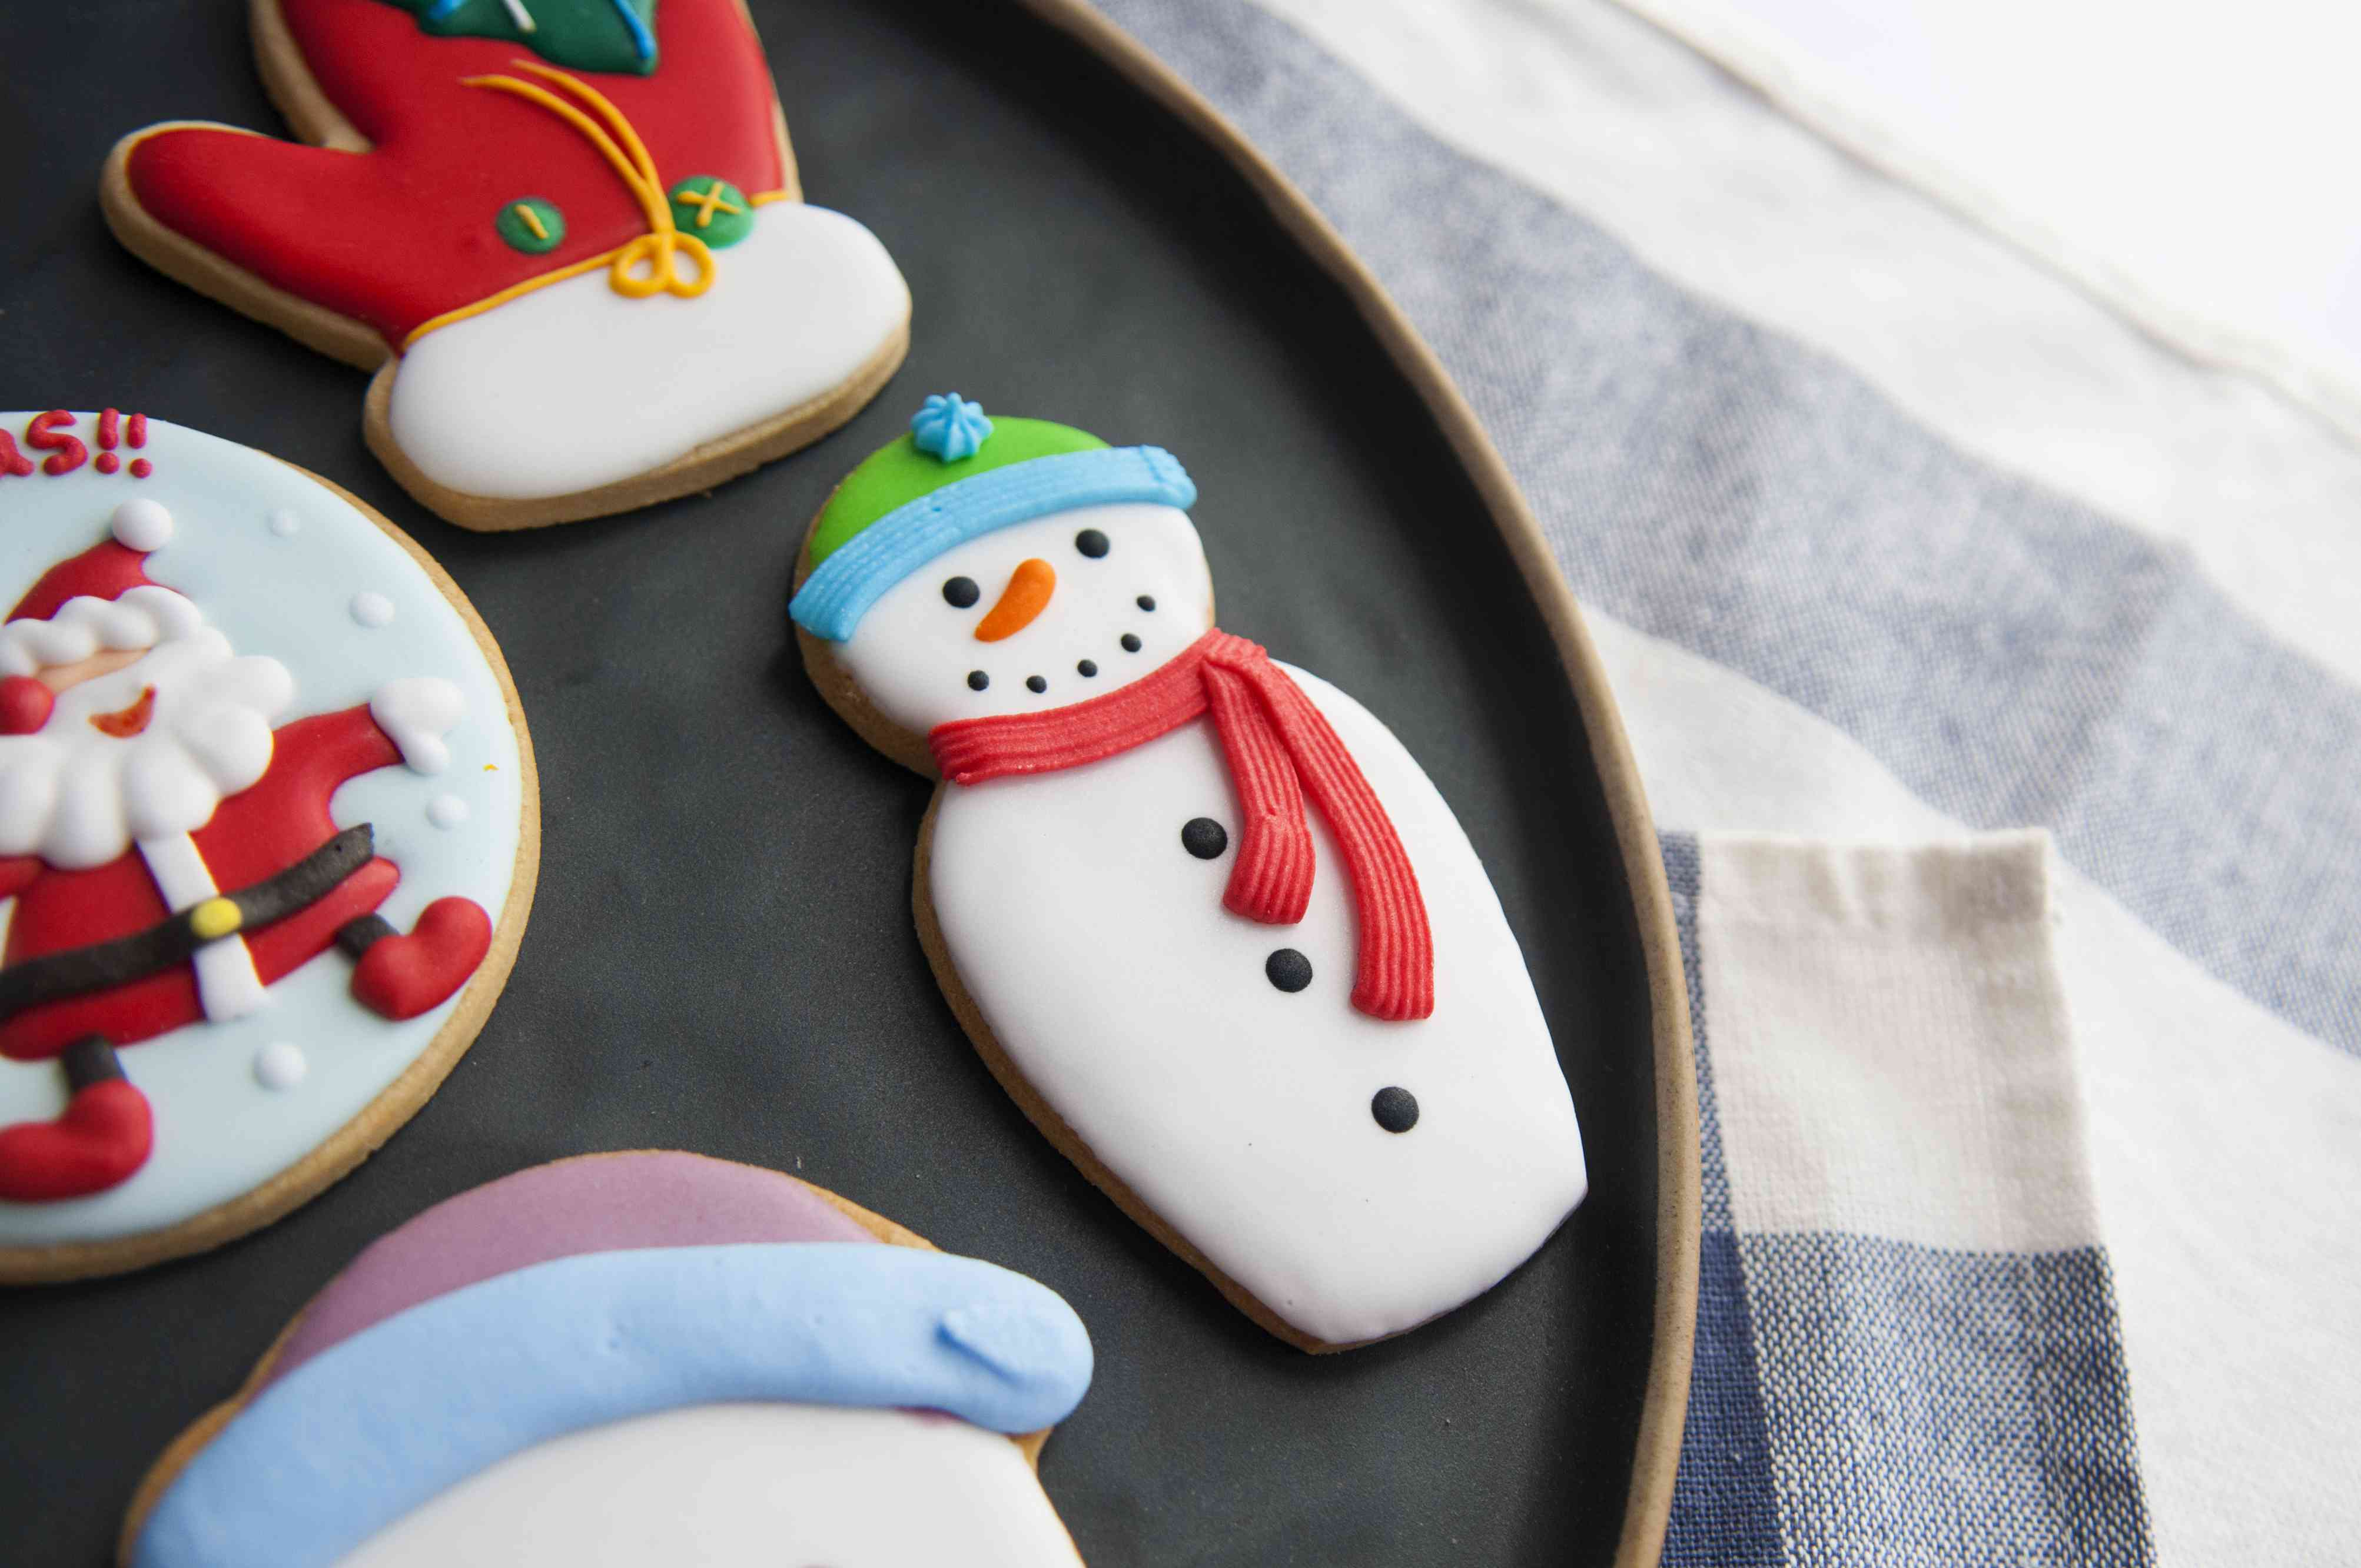 Multi Colored Gingerbread Cookies During Christmas In Plate